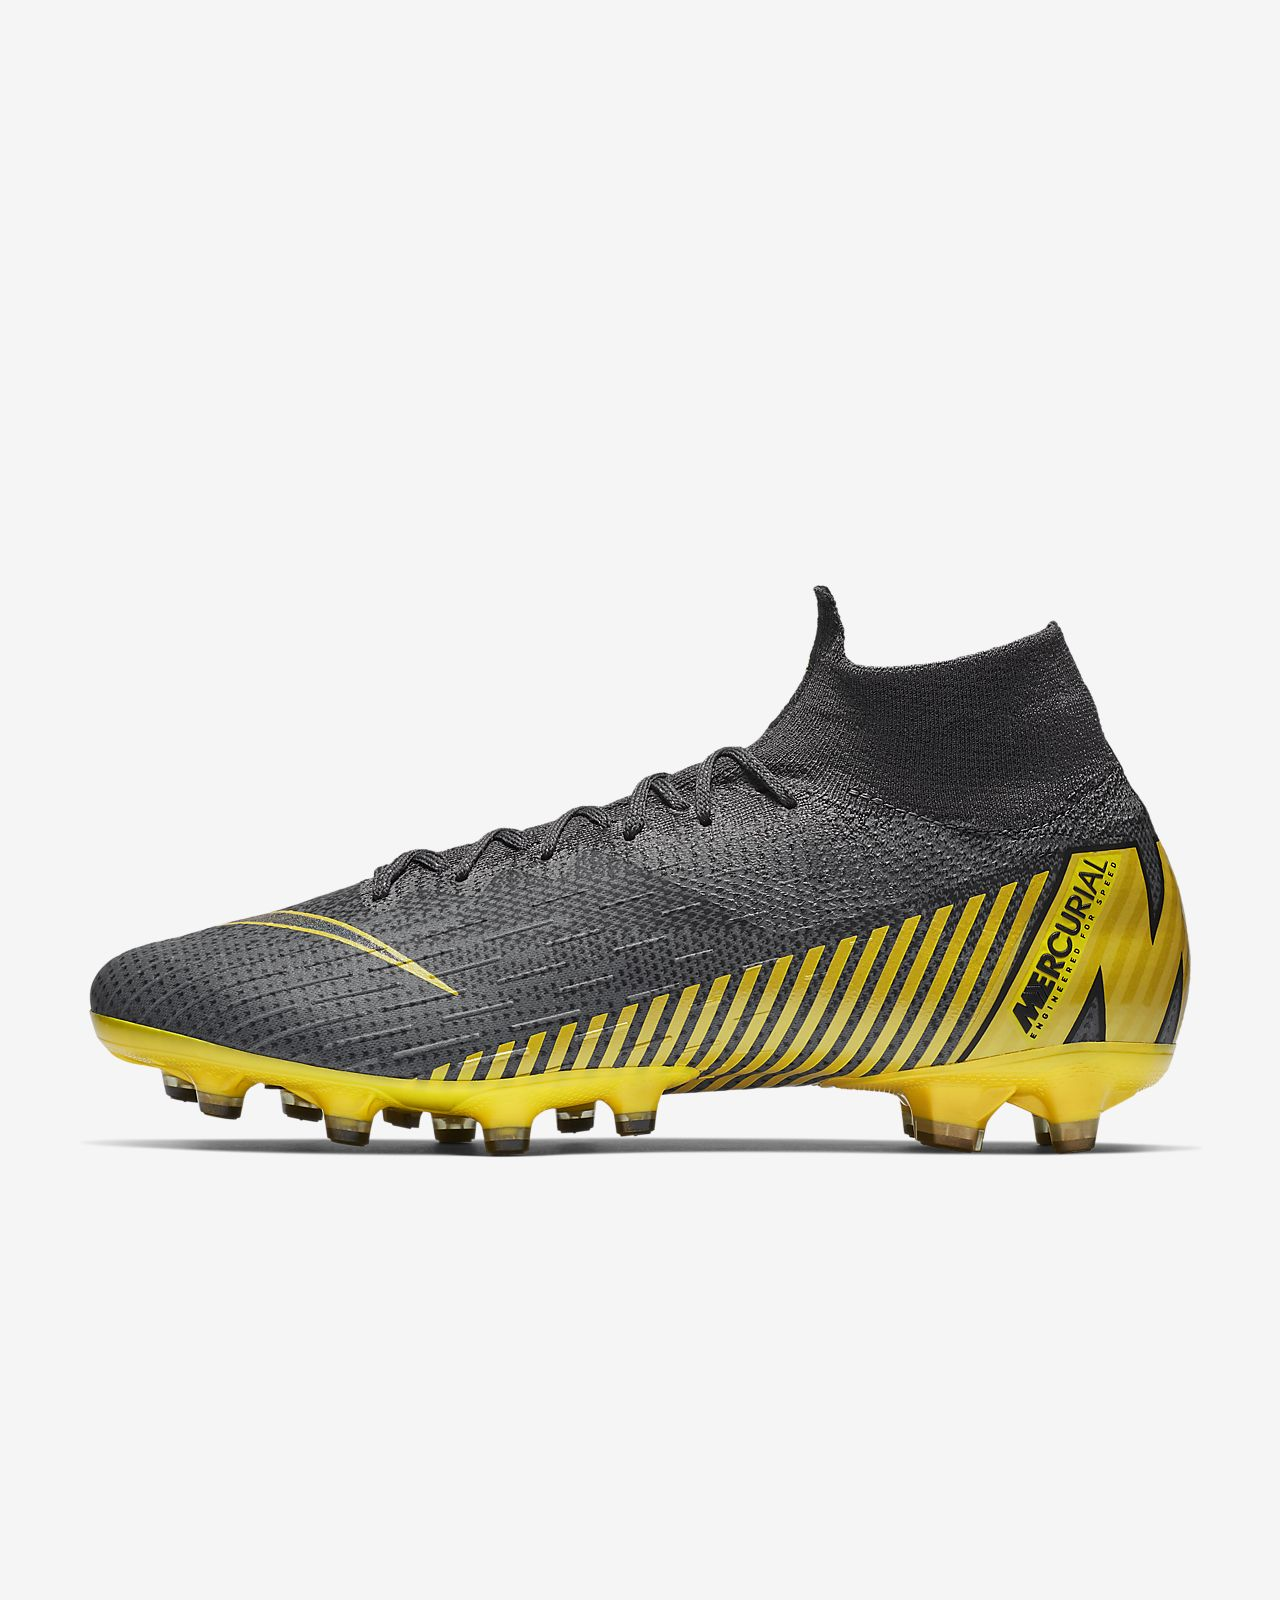 Scarpa da calcio per erba artificiale Nike Mercurial Superfly 360 Elite  AG,PRO